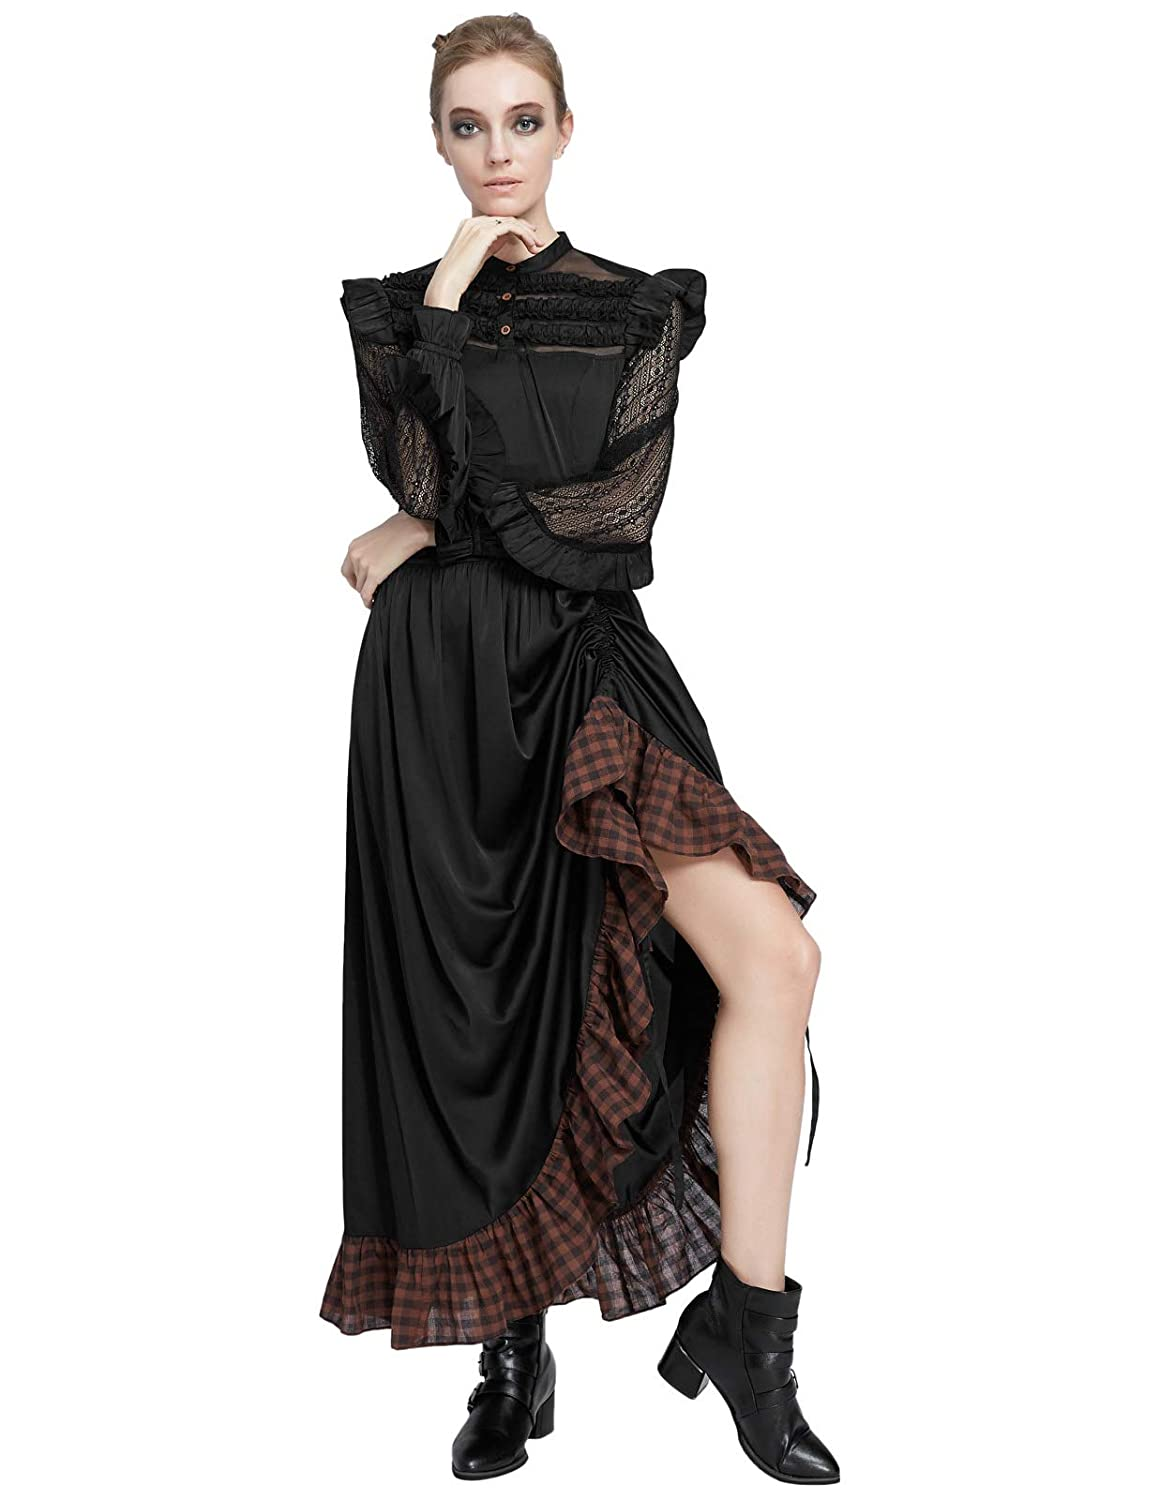 Steampunk Dresses | Women & Girl Costumes SCARLET DARKNESS Womens Victorian Renaissance Costume Adjustable Ruffle Dresses $37.99 AT vintagedancer.com